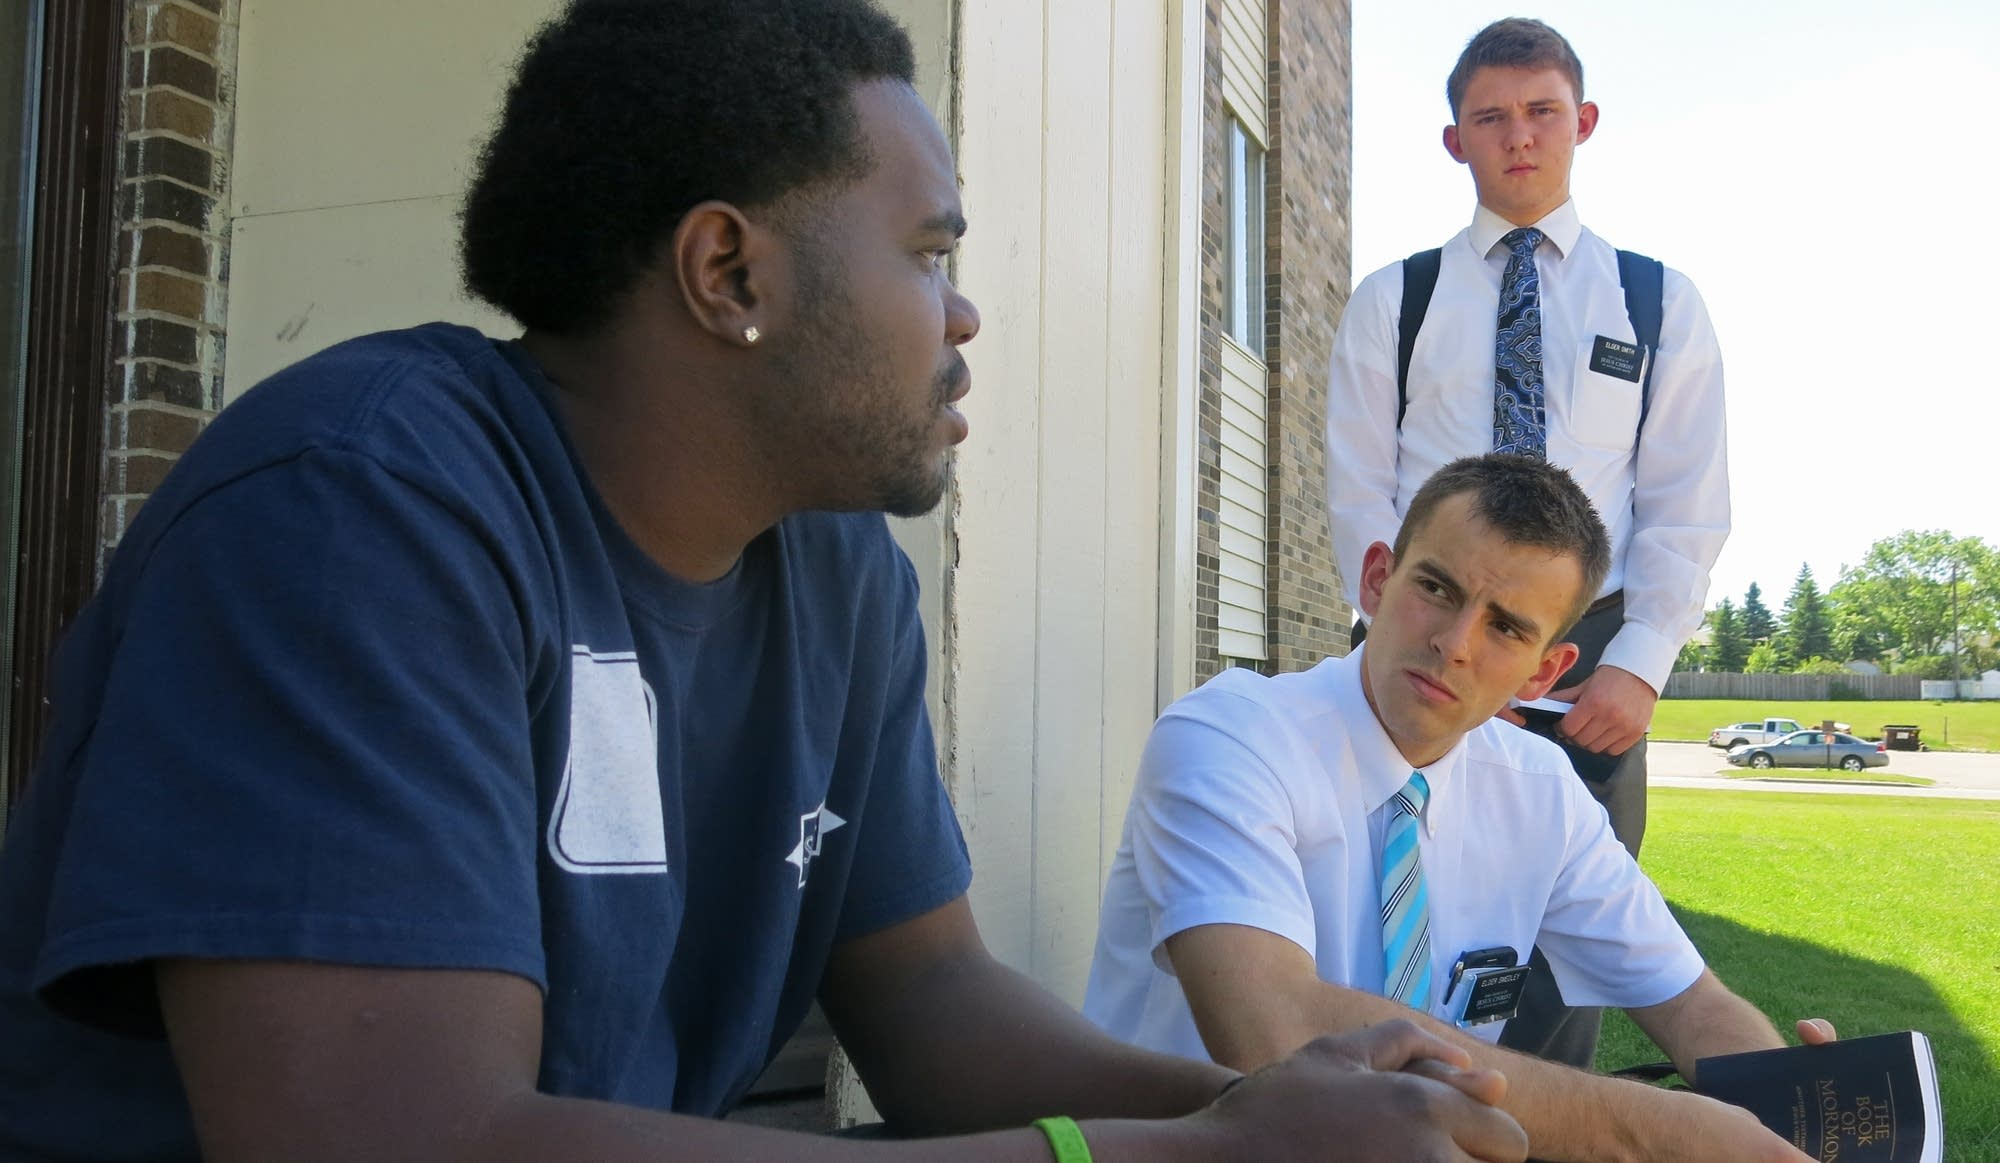 Young Mormon missionaries talk with a man identified only as Devontae.